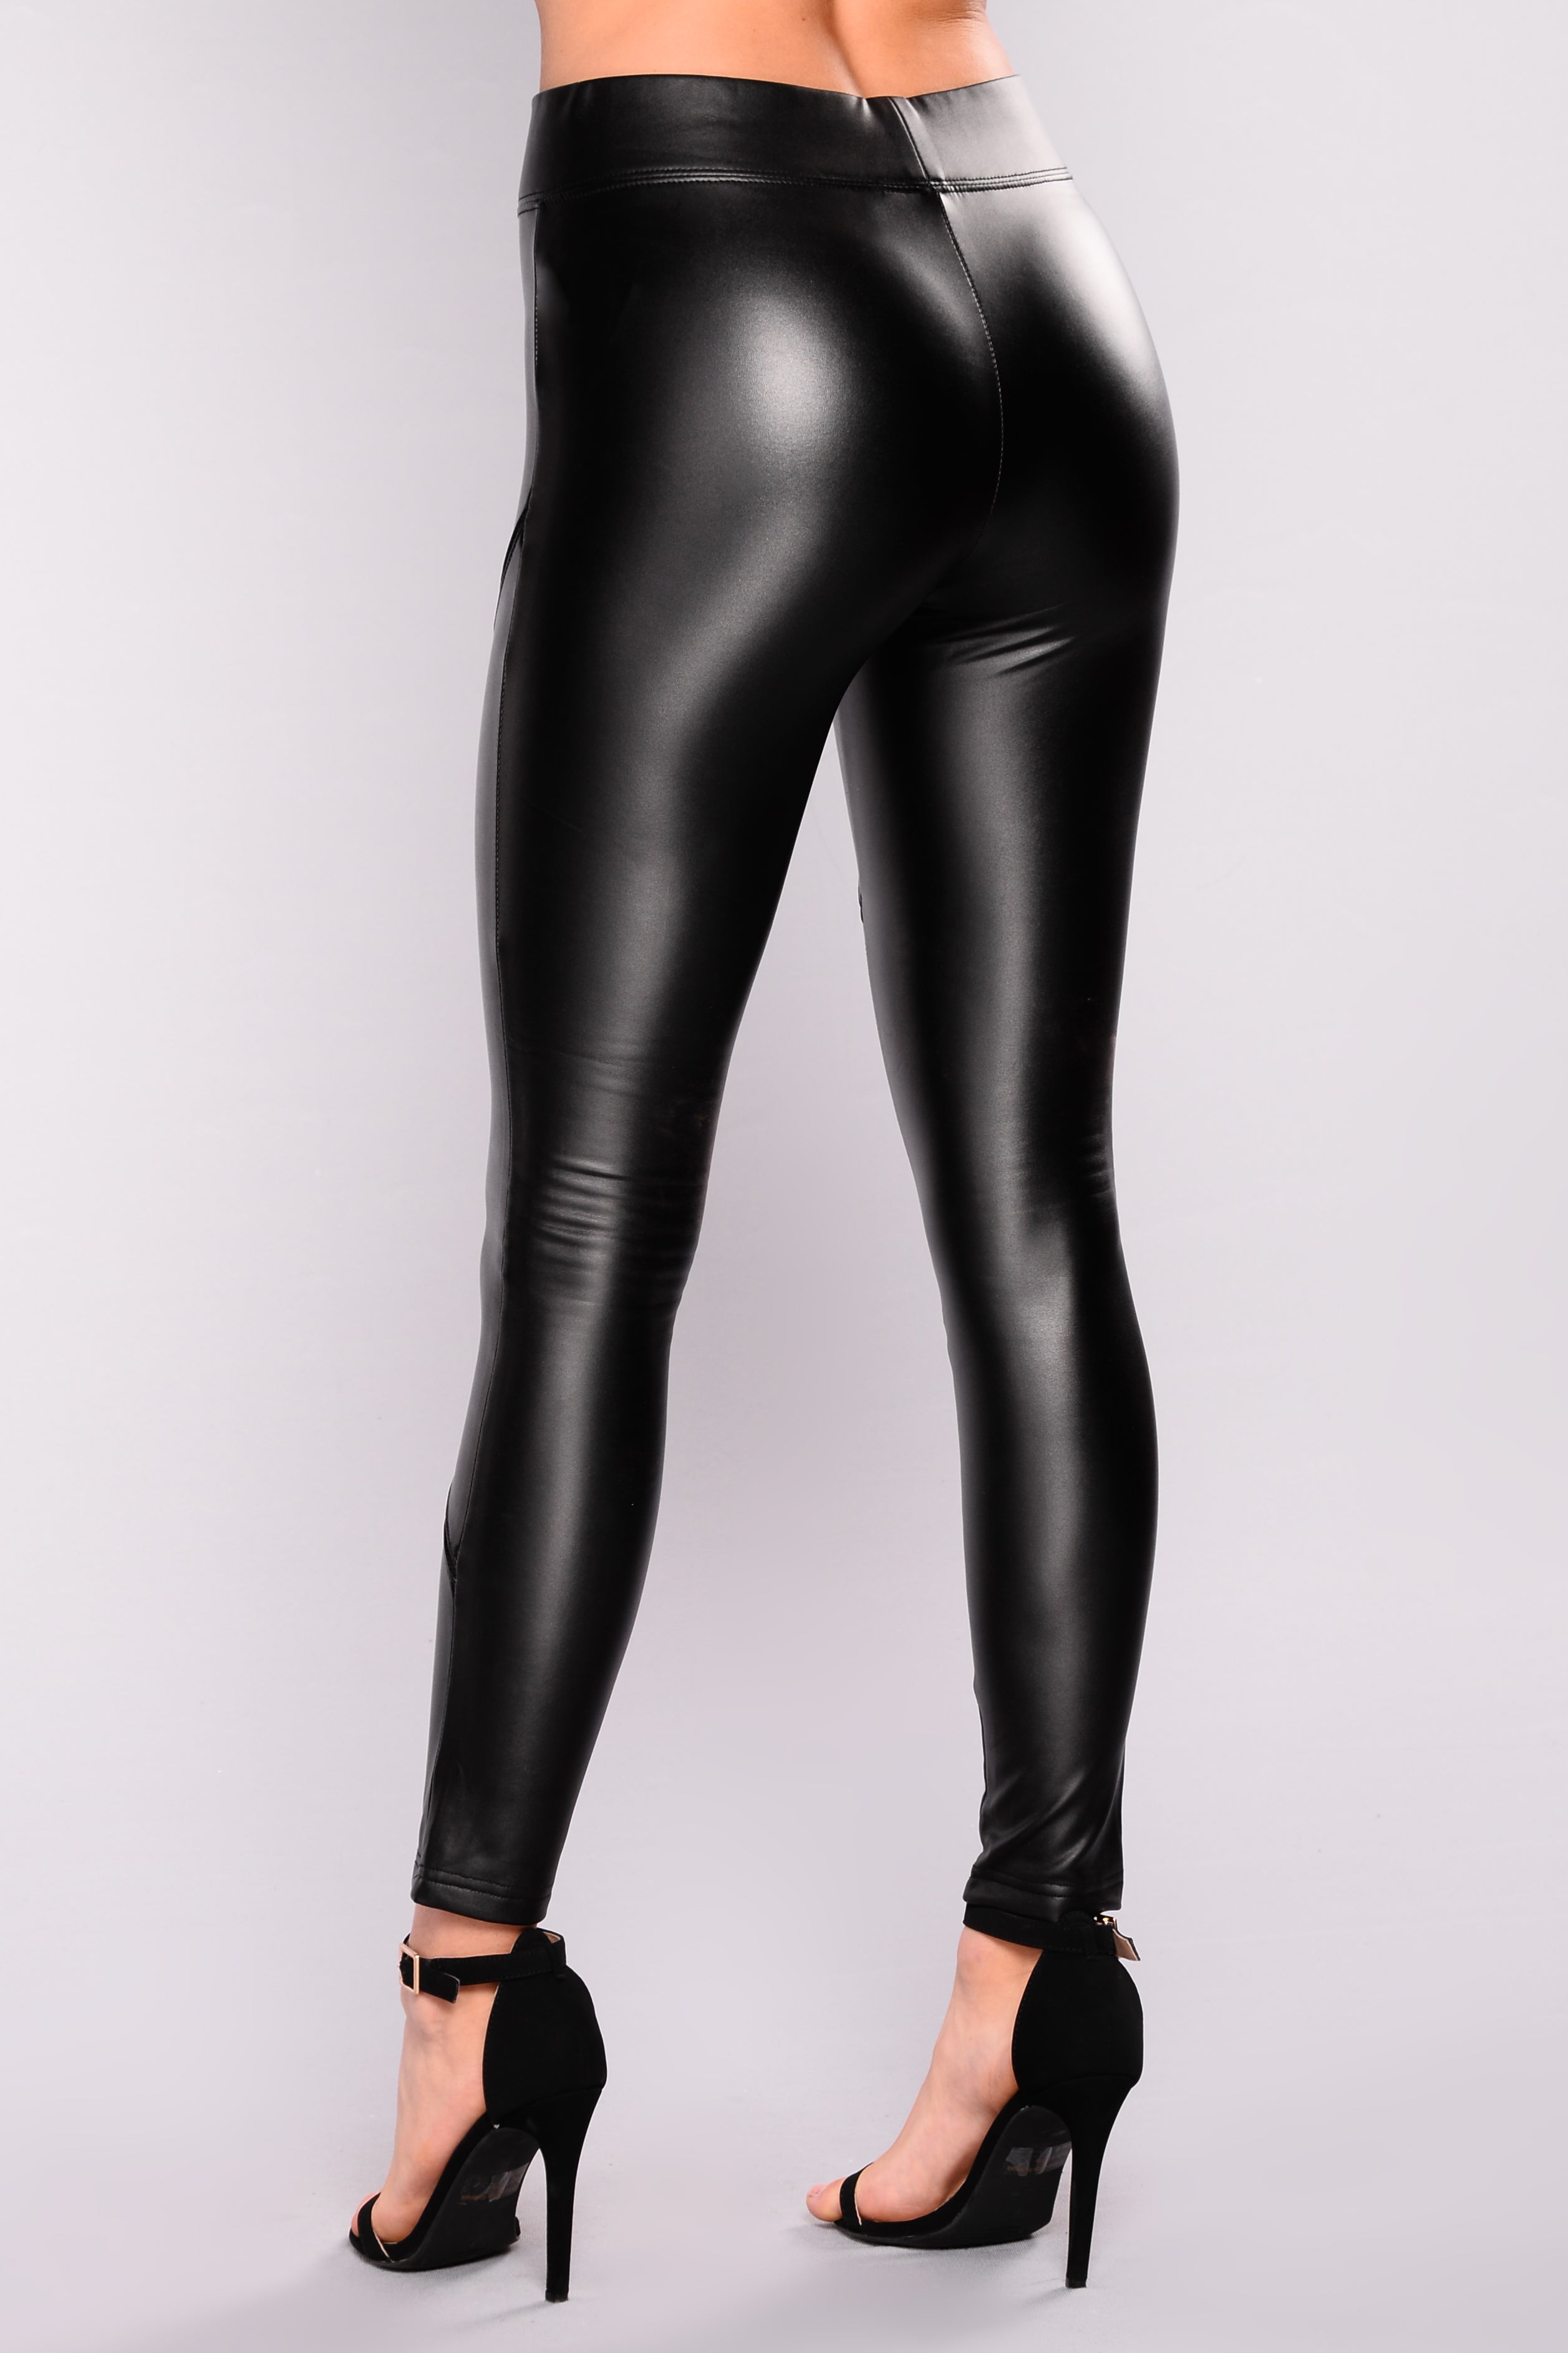 talia faux leather leggings black. Black Bedroom Furniture Sets. Home Design Ideas